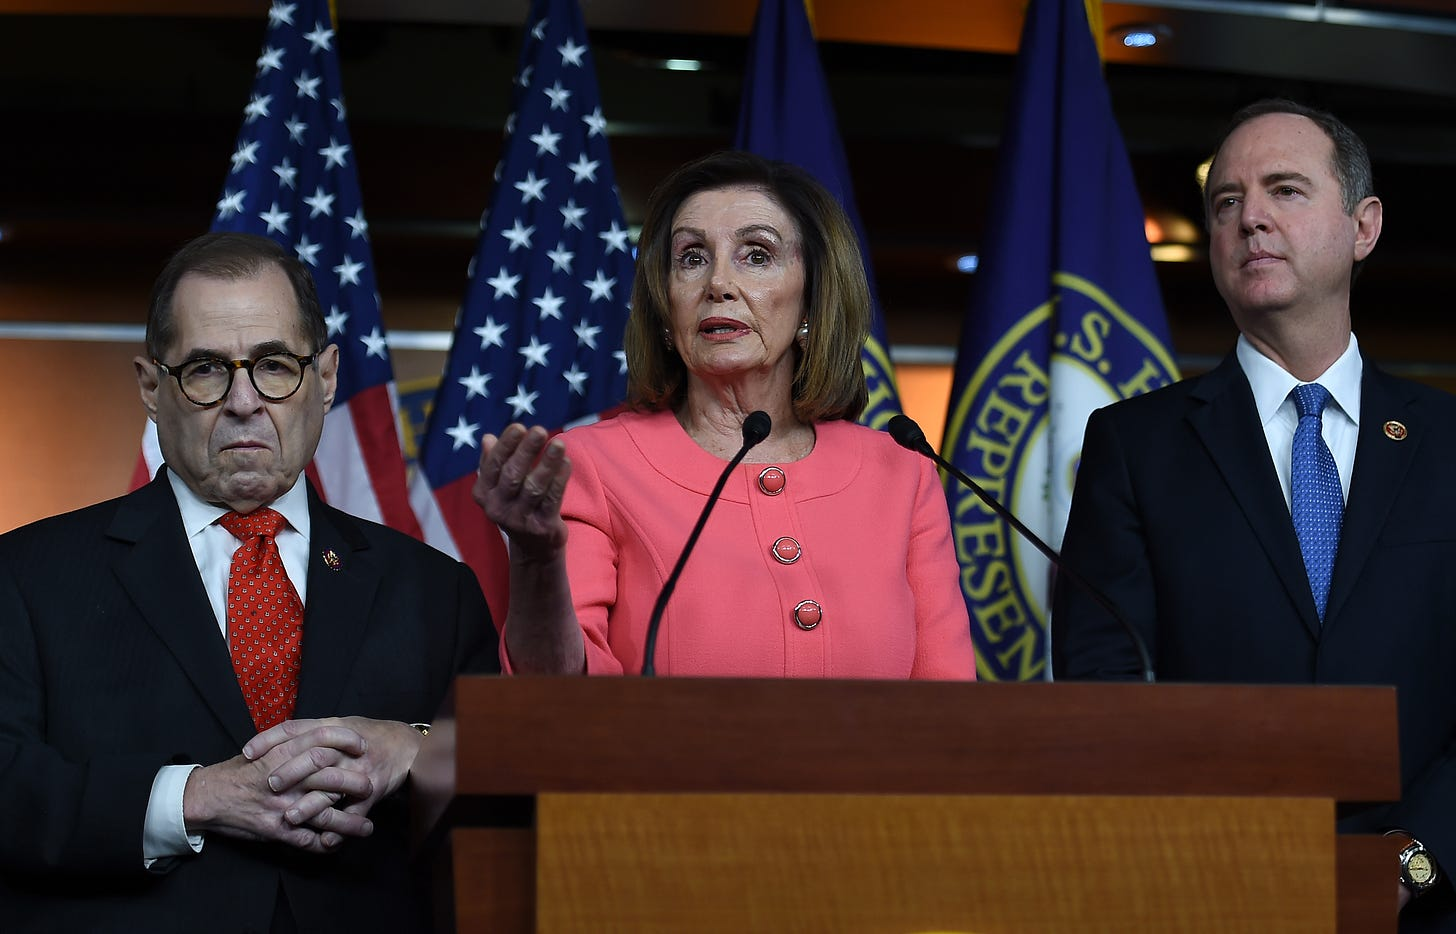 US Speaker of the House Nancy Pelosi (D-CA) flanked by Rep. Adam Schiff (D-CA) (R) and Rep. Jerry Nadler (D-NY), speaks at a press conference on Capitol Hill (Photo by OLIVIER DOULIERY/AFP via Getty Images)